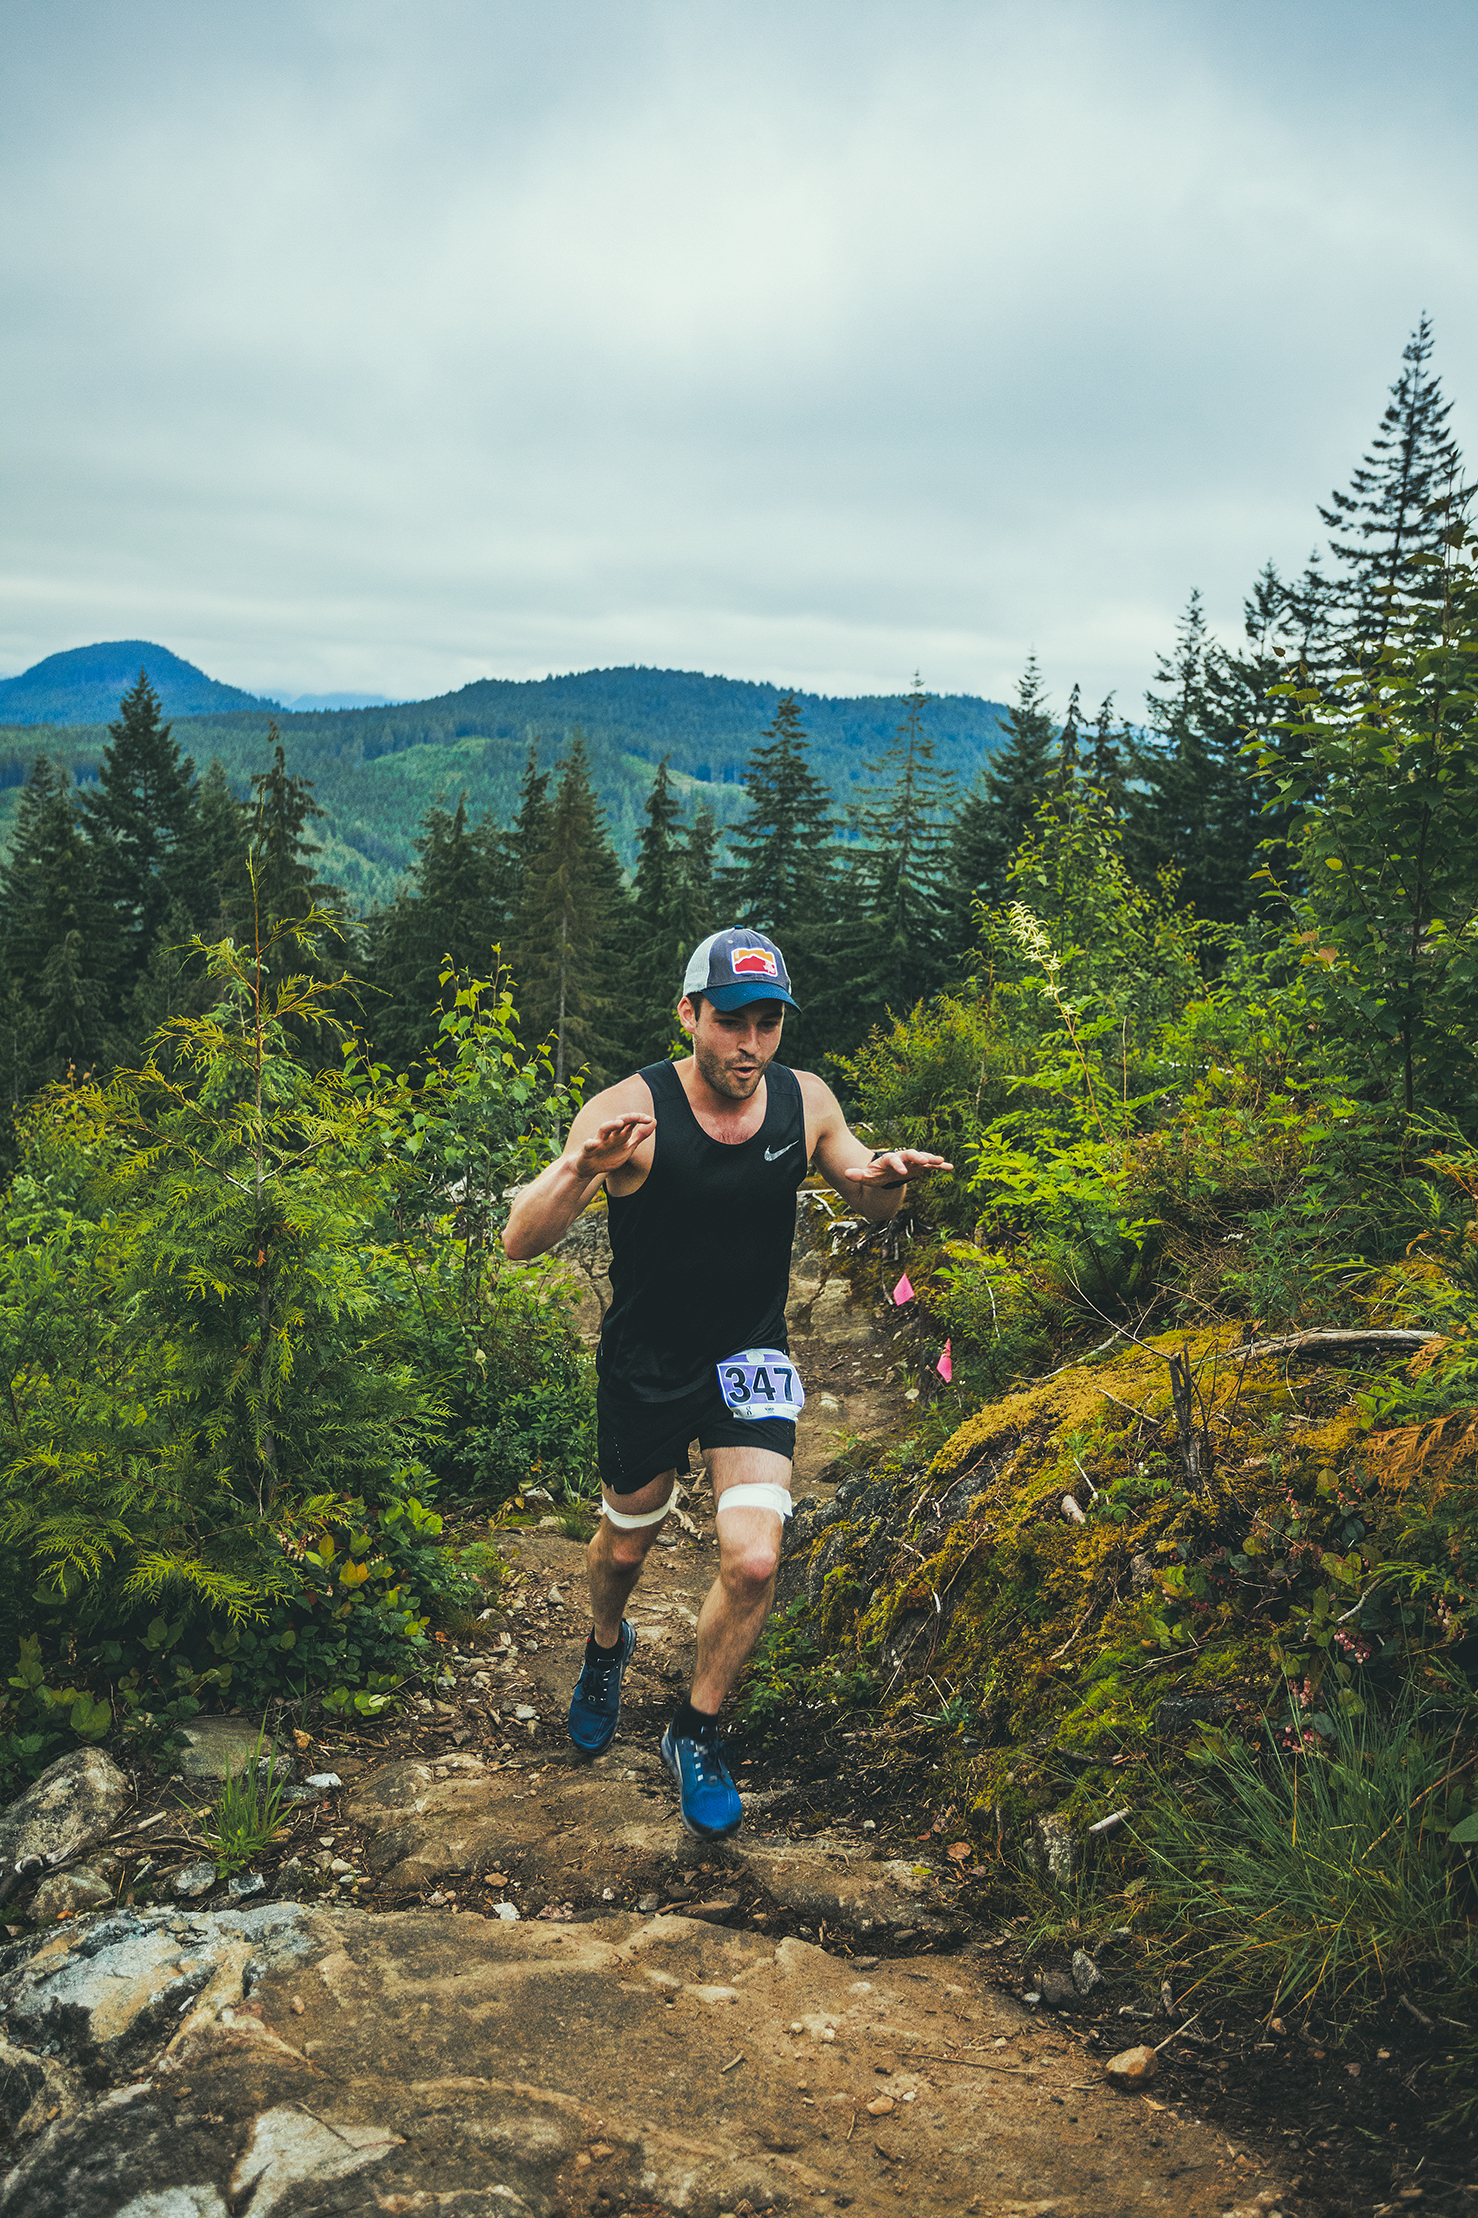 Fraser Valley Trail Races - Bear Mountain - IMG_1410 by Brice Ferre Studio - Vancouver Portrait Adventure and Athlete Photographer.jpg